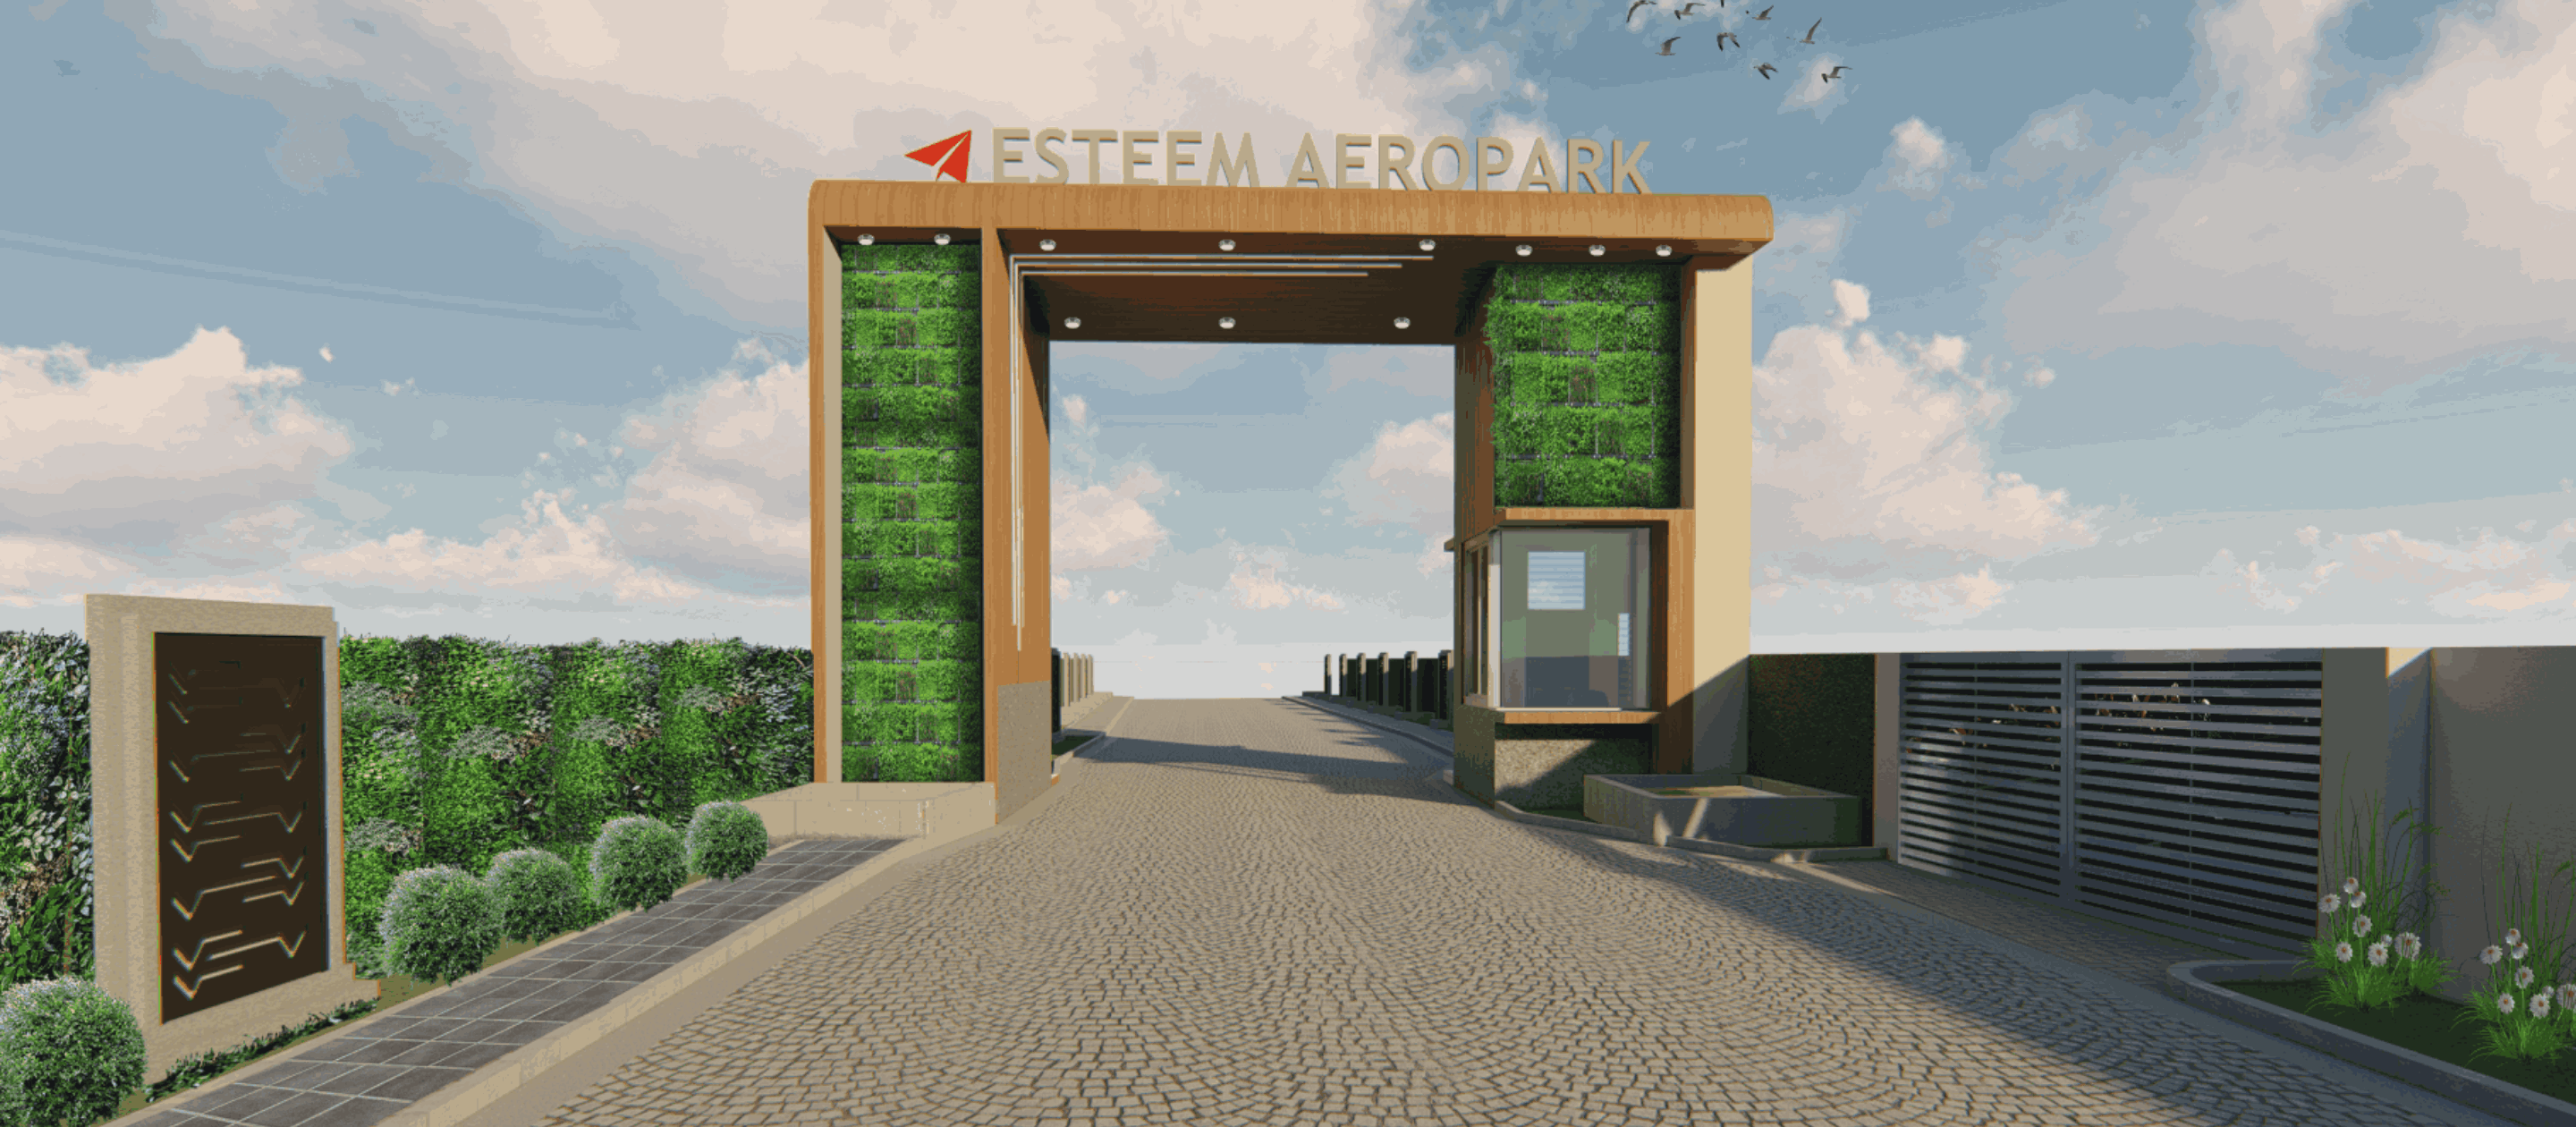 Esteem Aeropark – 1km from airport